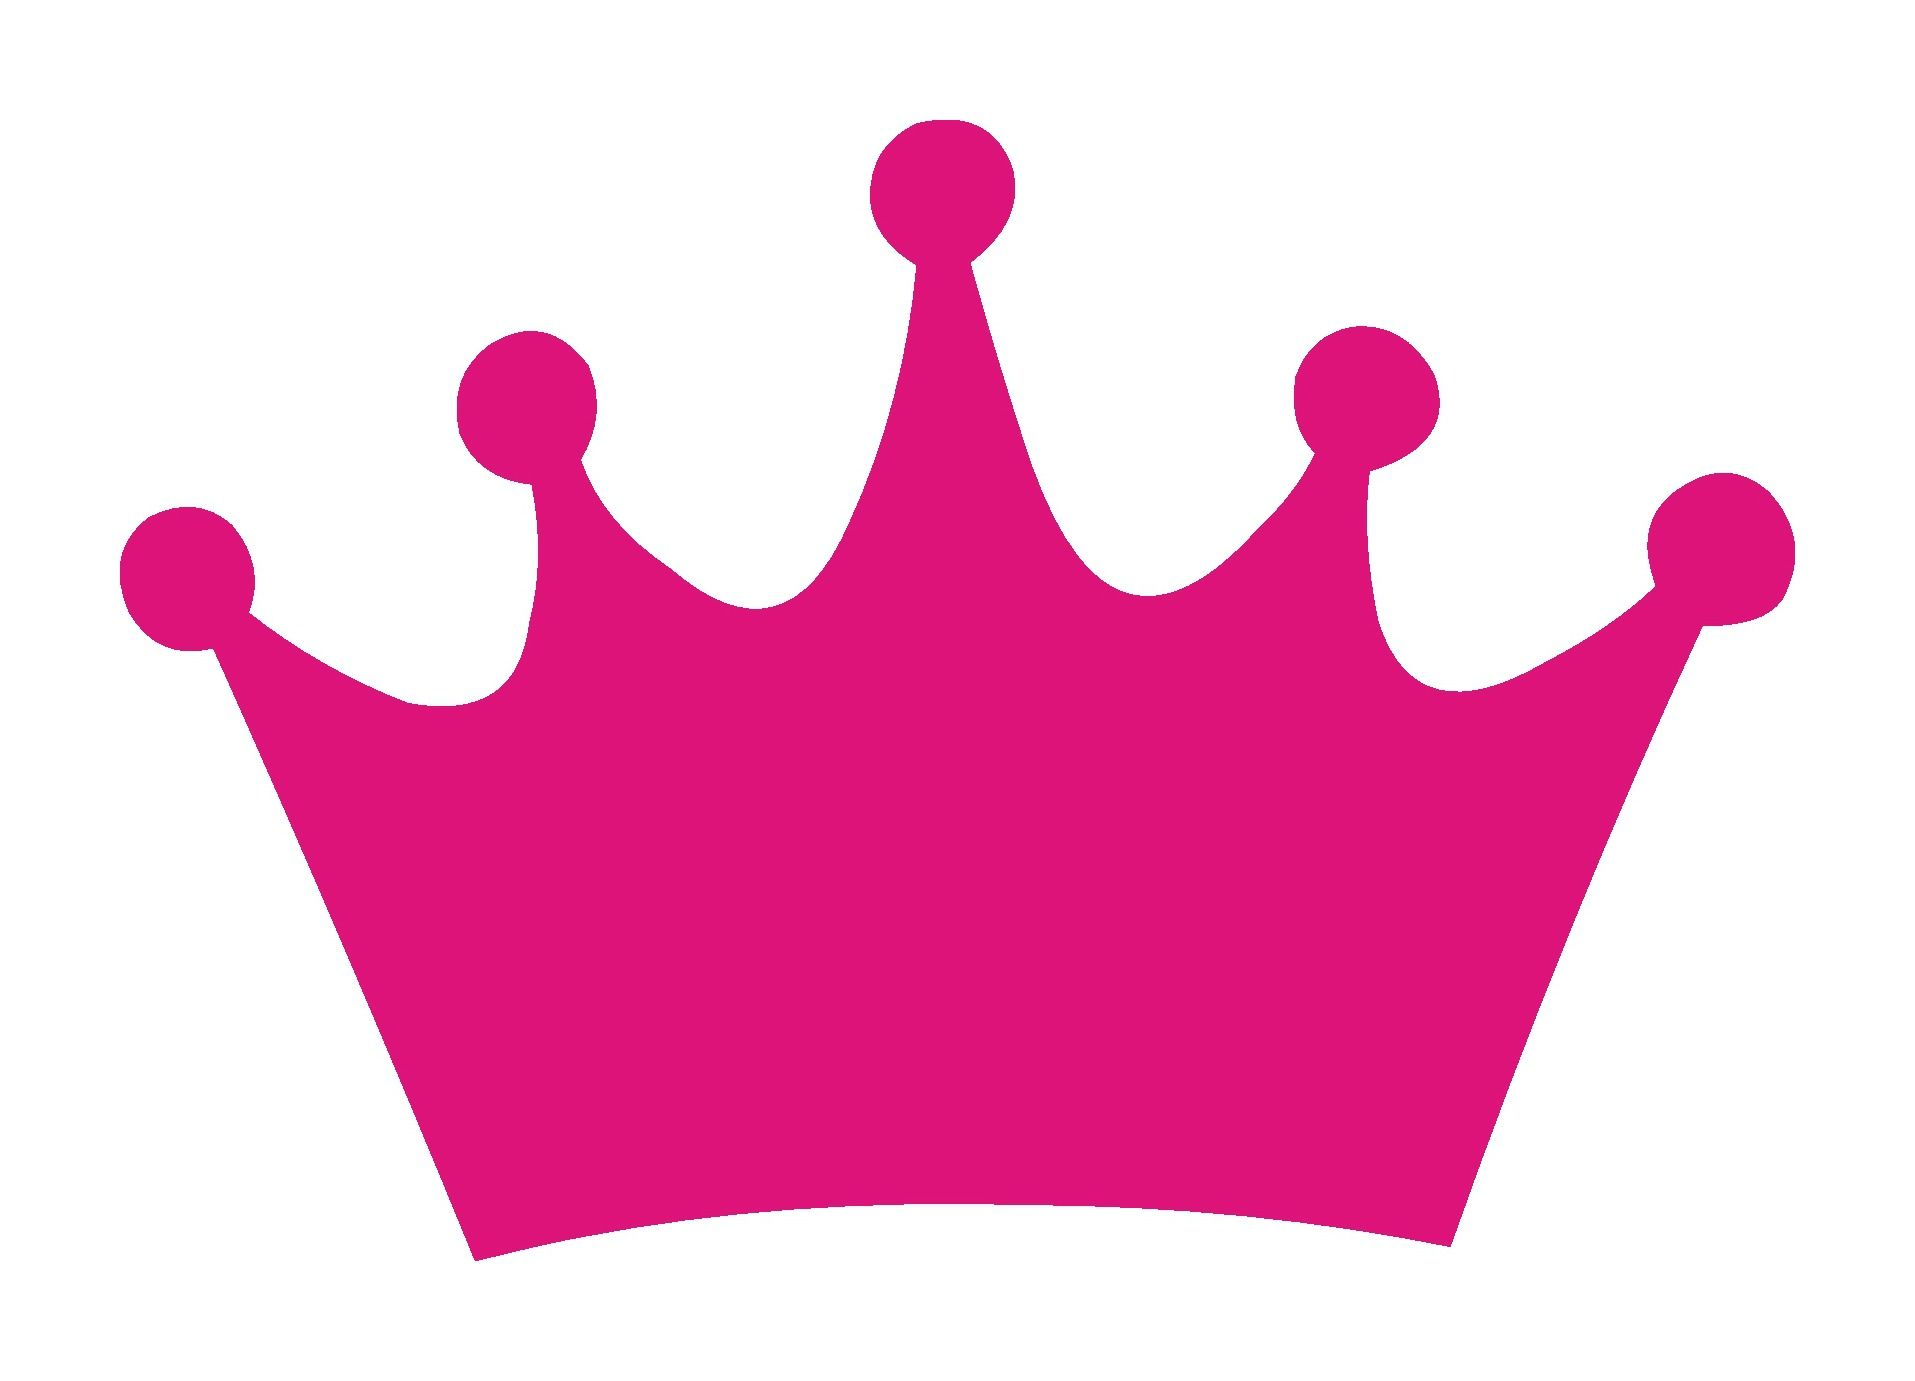 Crown clip art. This is best princess